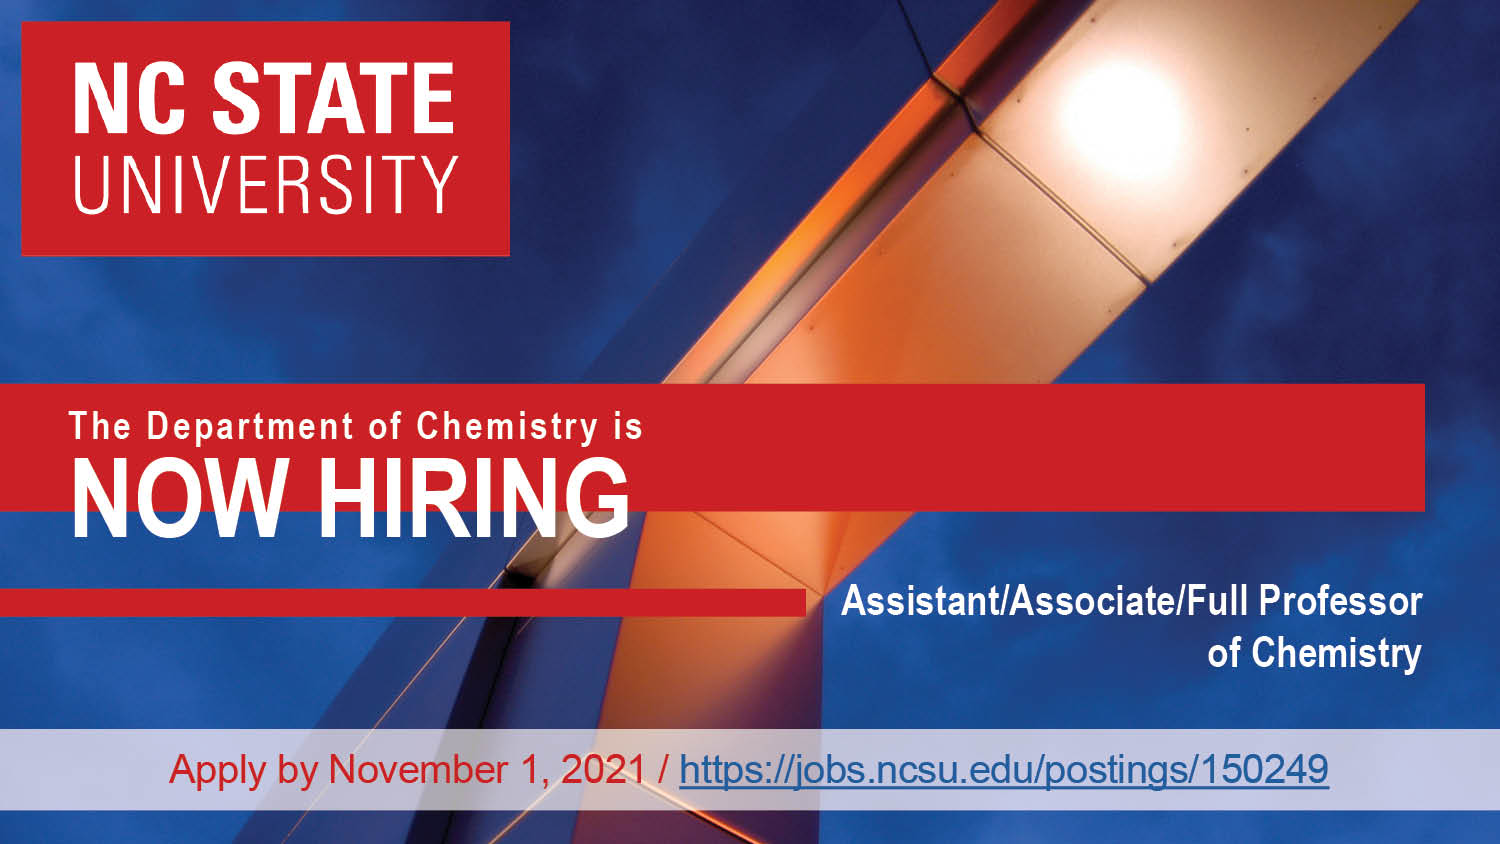 Hiring for an open rank position in chemistry for 2021